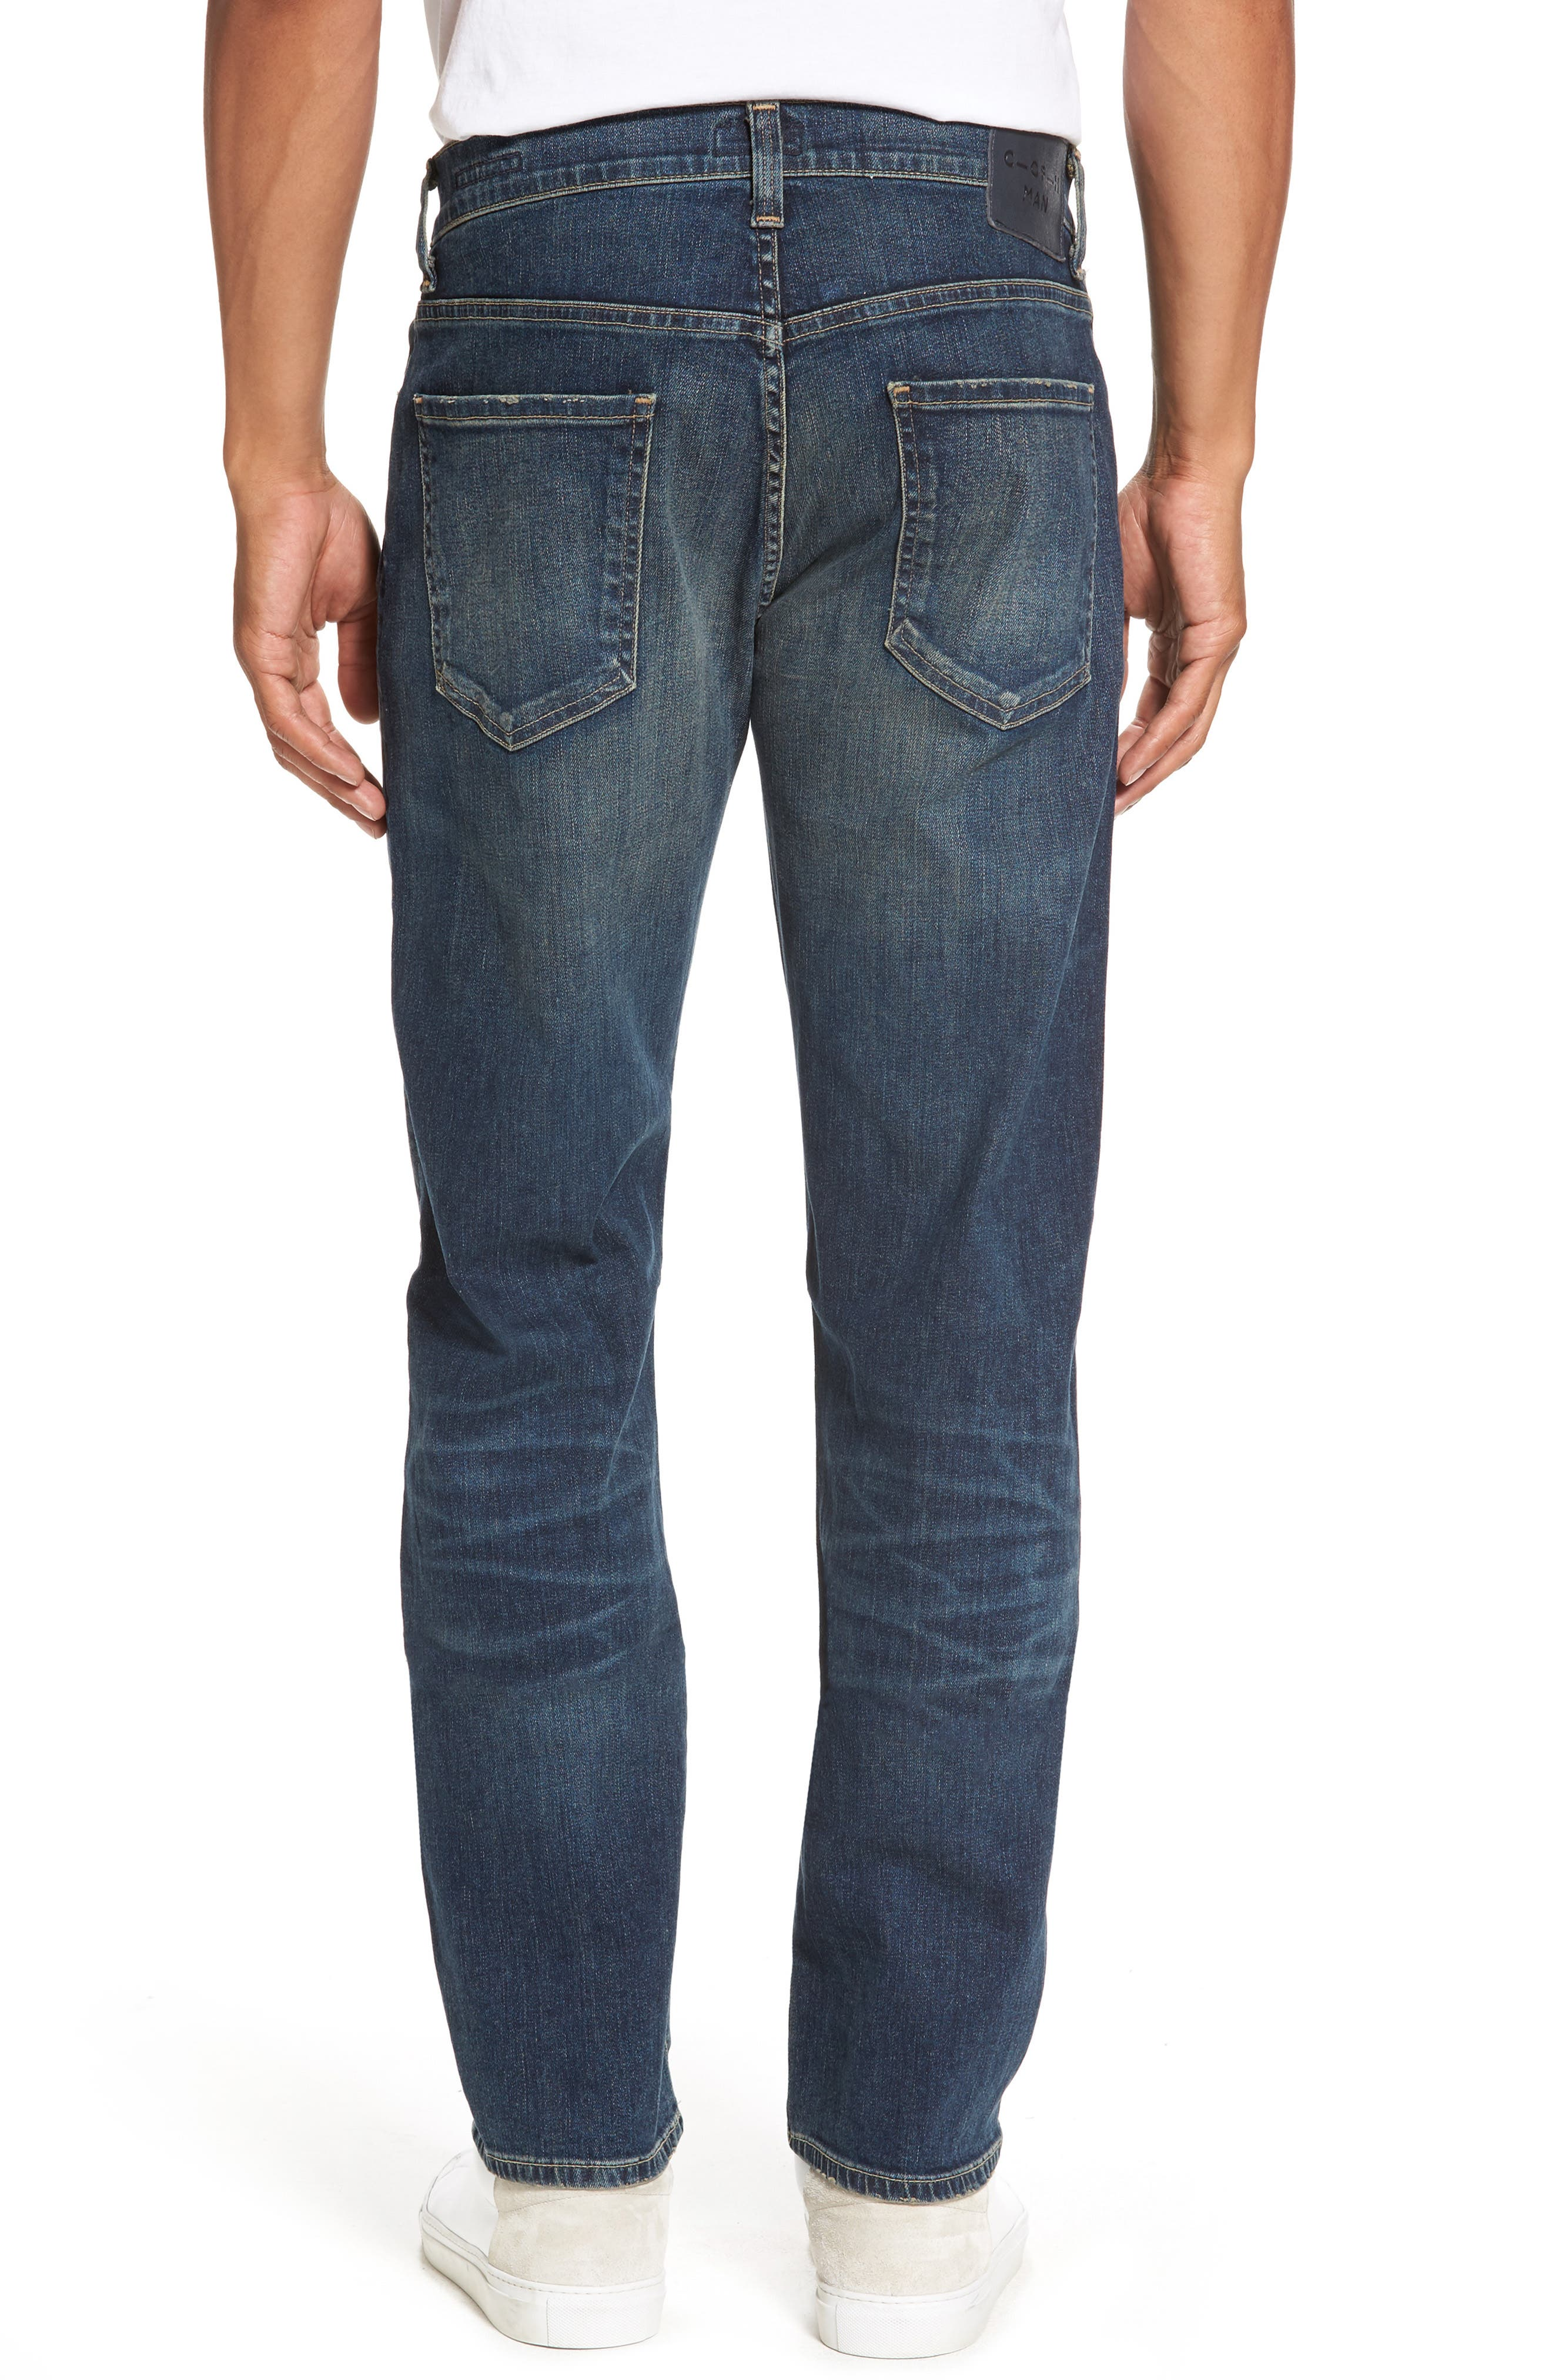 Core Slim Fit Jeans,                             Alternate thumbnail 2, color,                             472